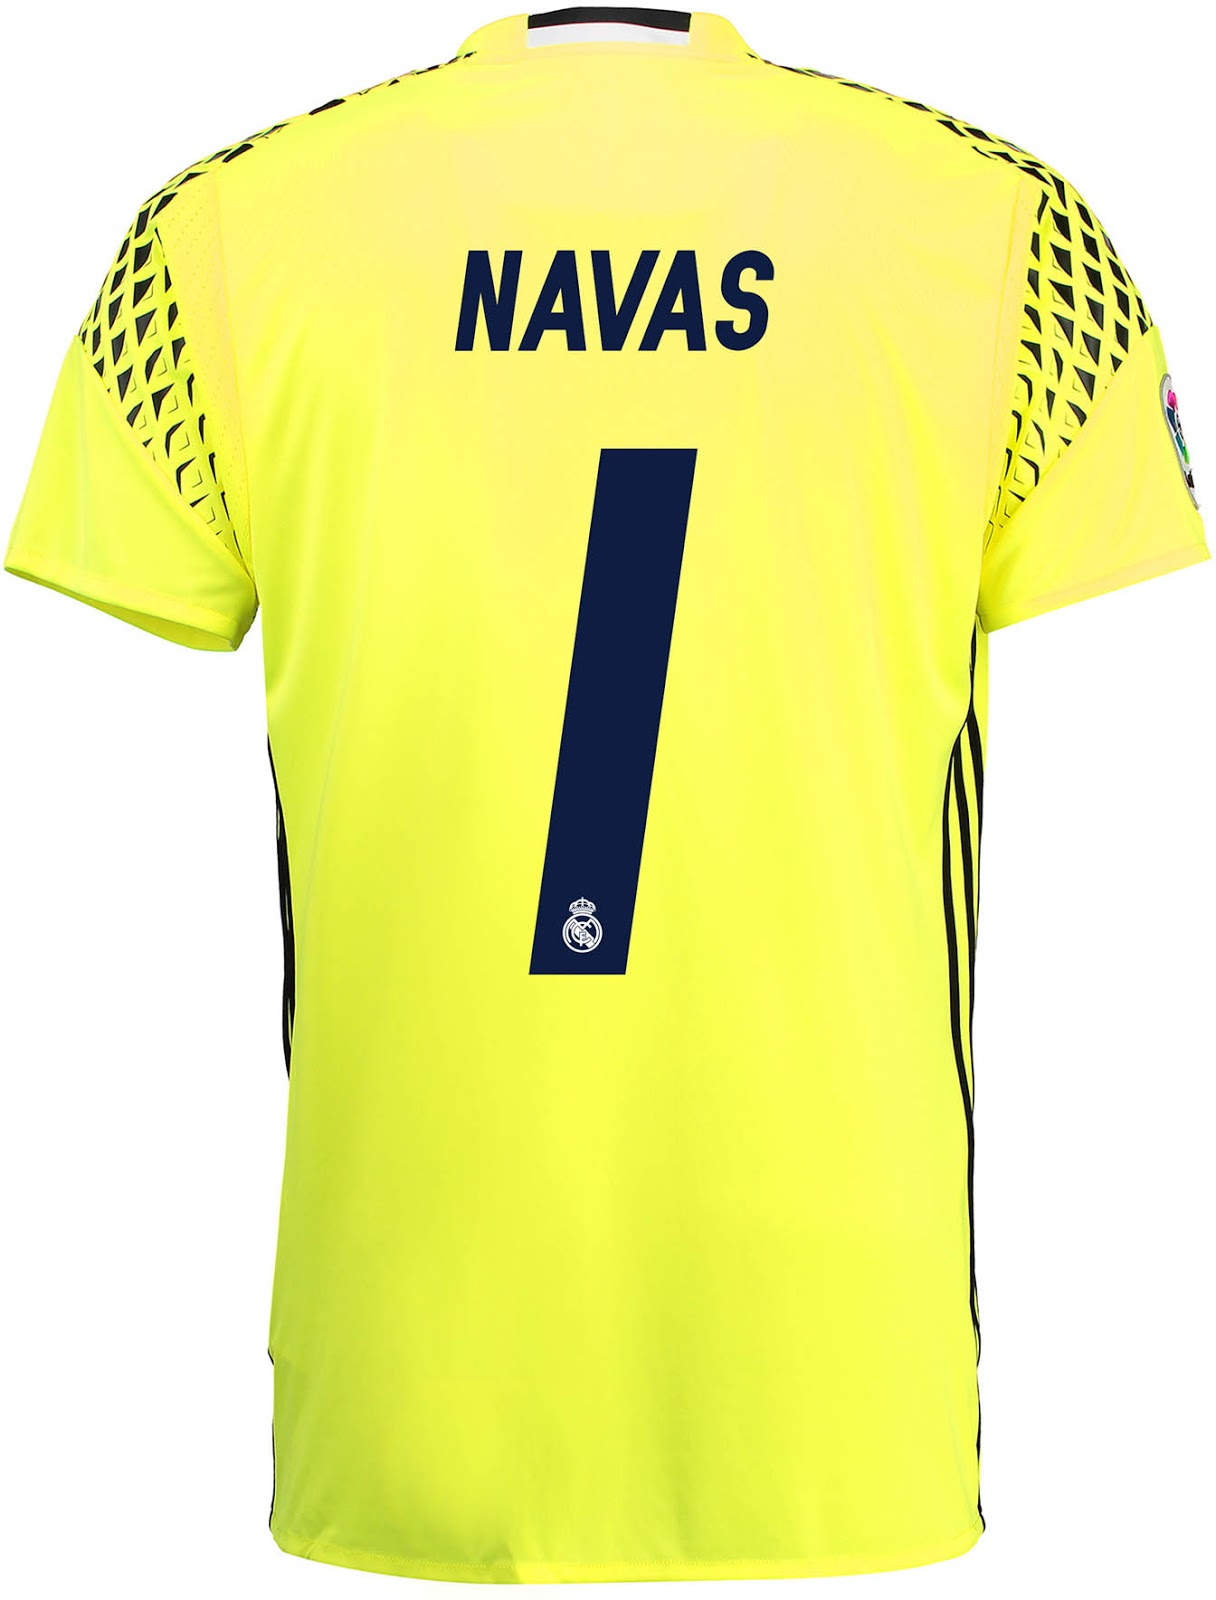 3d4d9951d Yükle (800x800)large discount MENS AADIDAS REAL MADRID AWAY REPLICA  GOALKEEPER JERSEY - YELLOW ADIDAS UK SALE